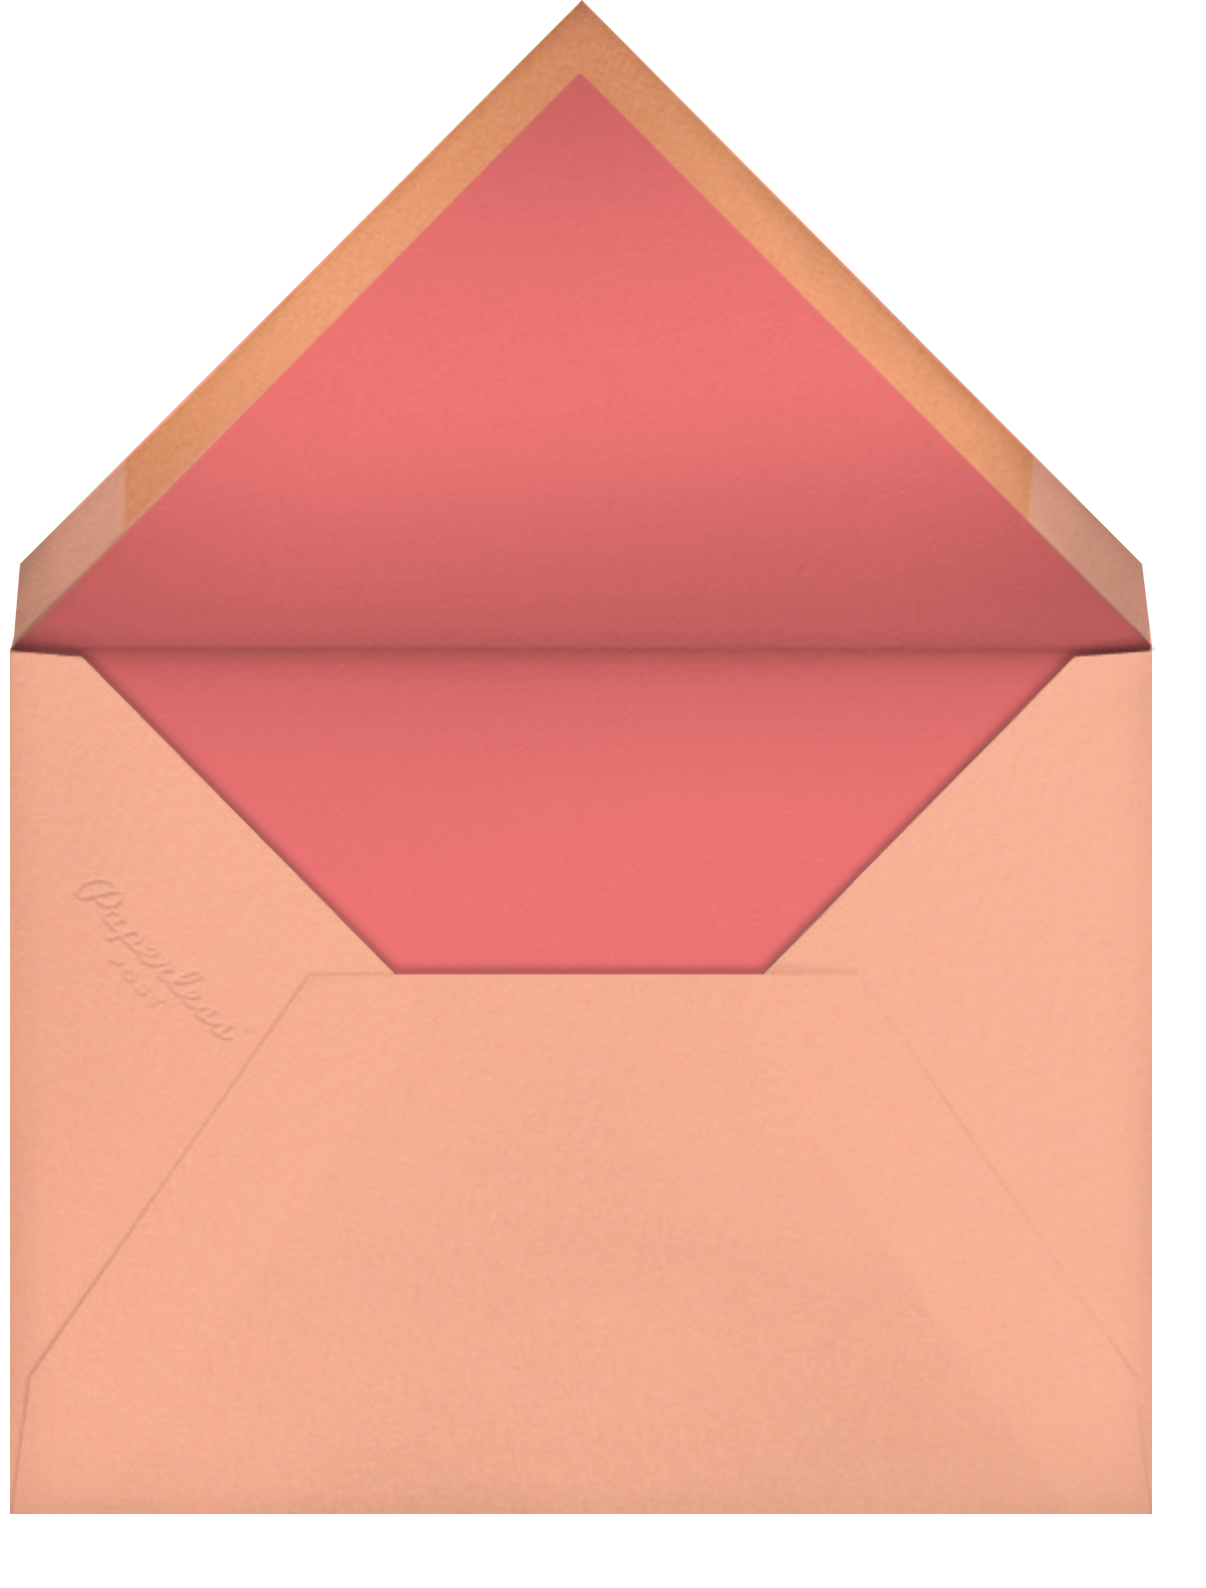 Featured Thanks (Photo) - Sherbet - Paperless Post - Envelope